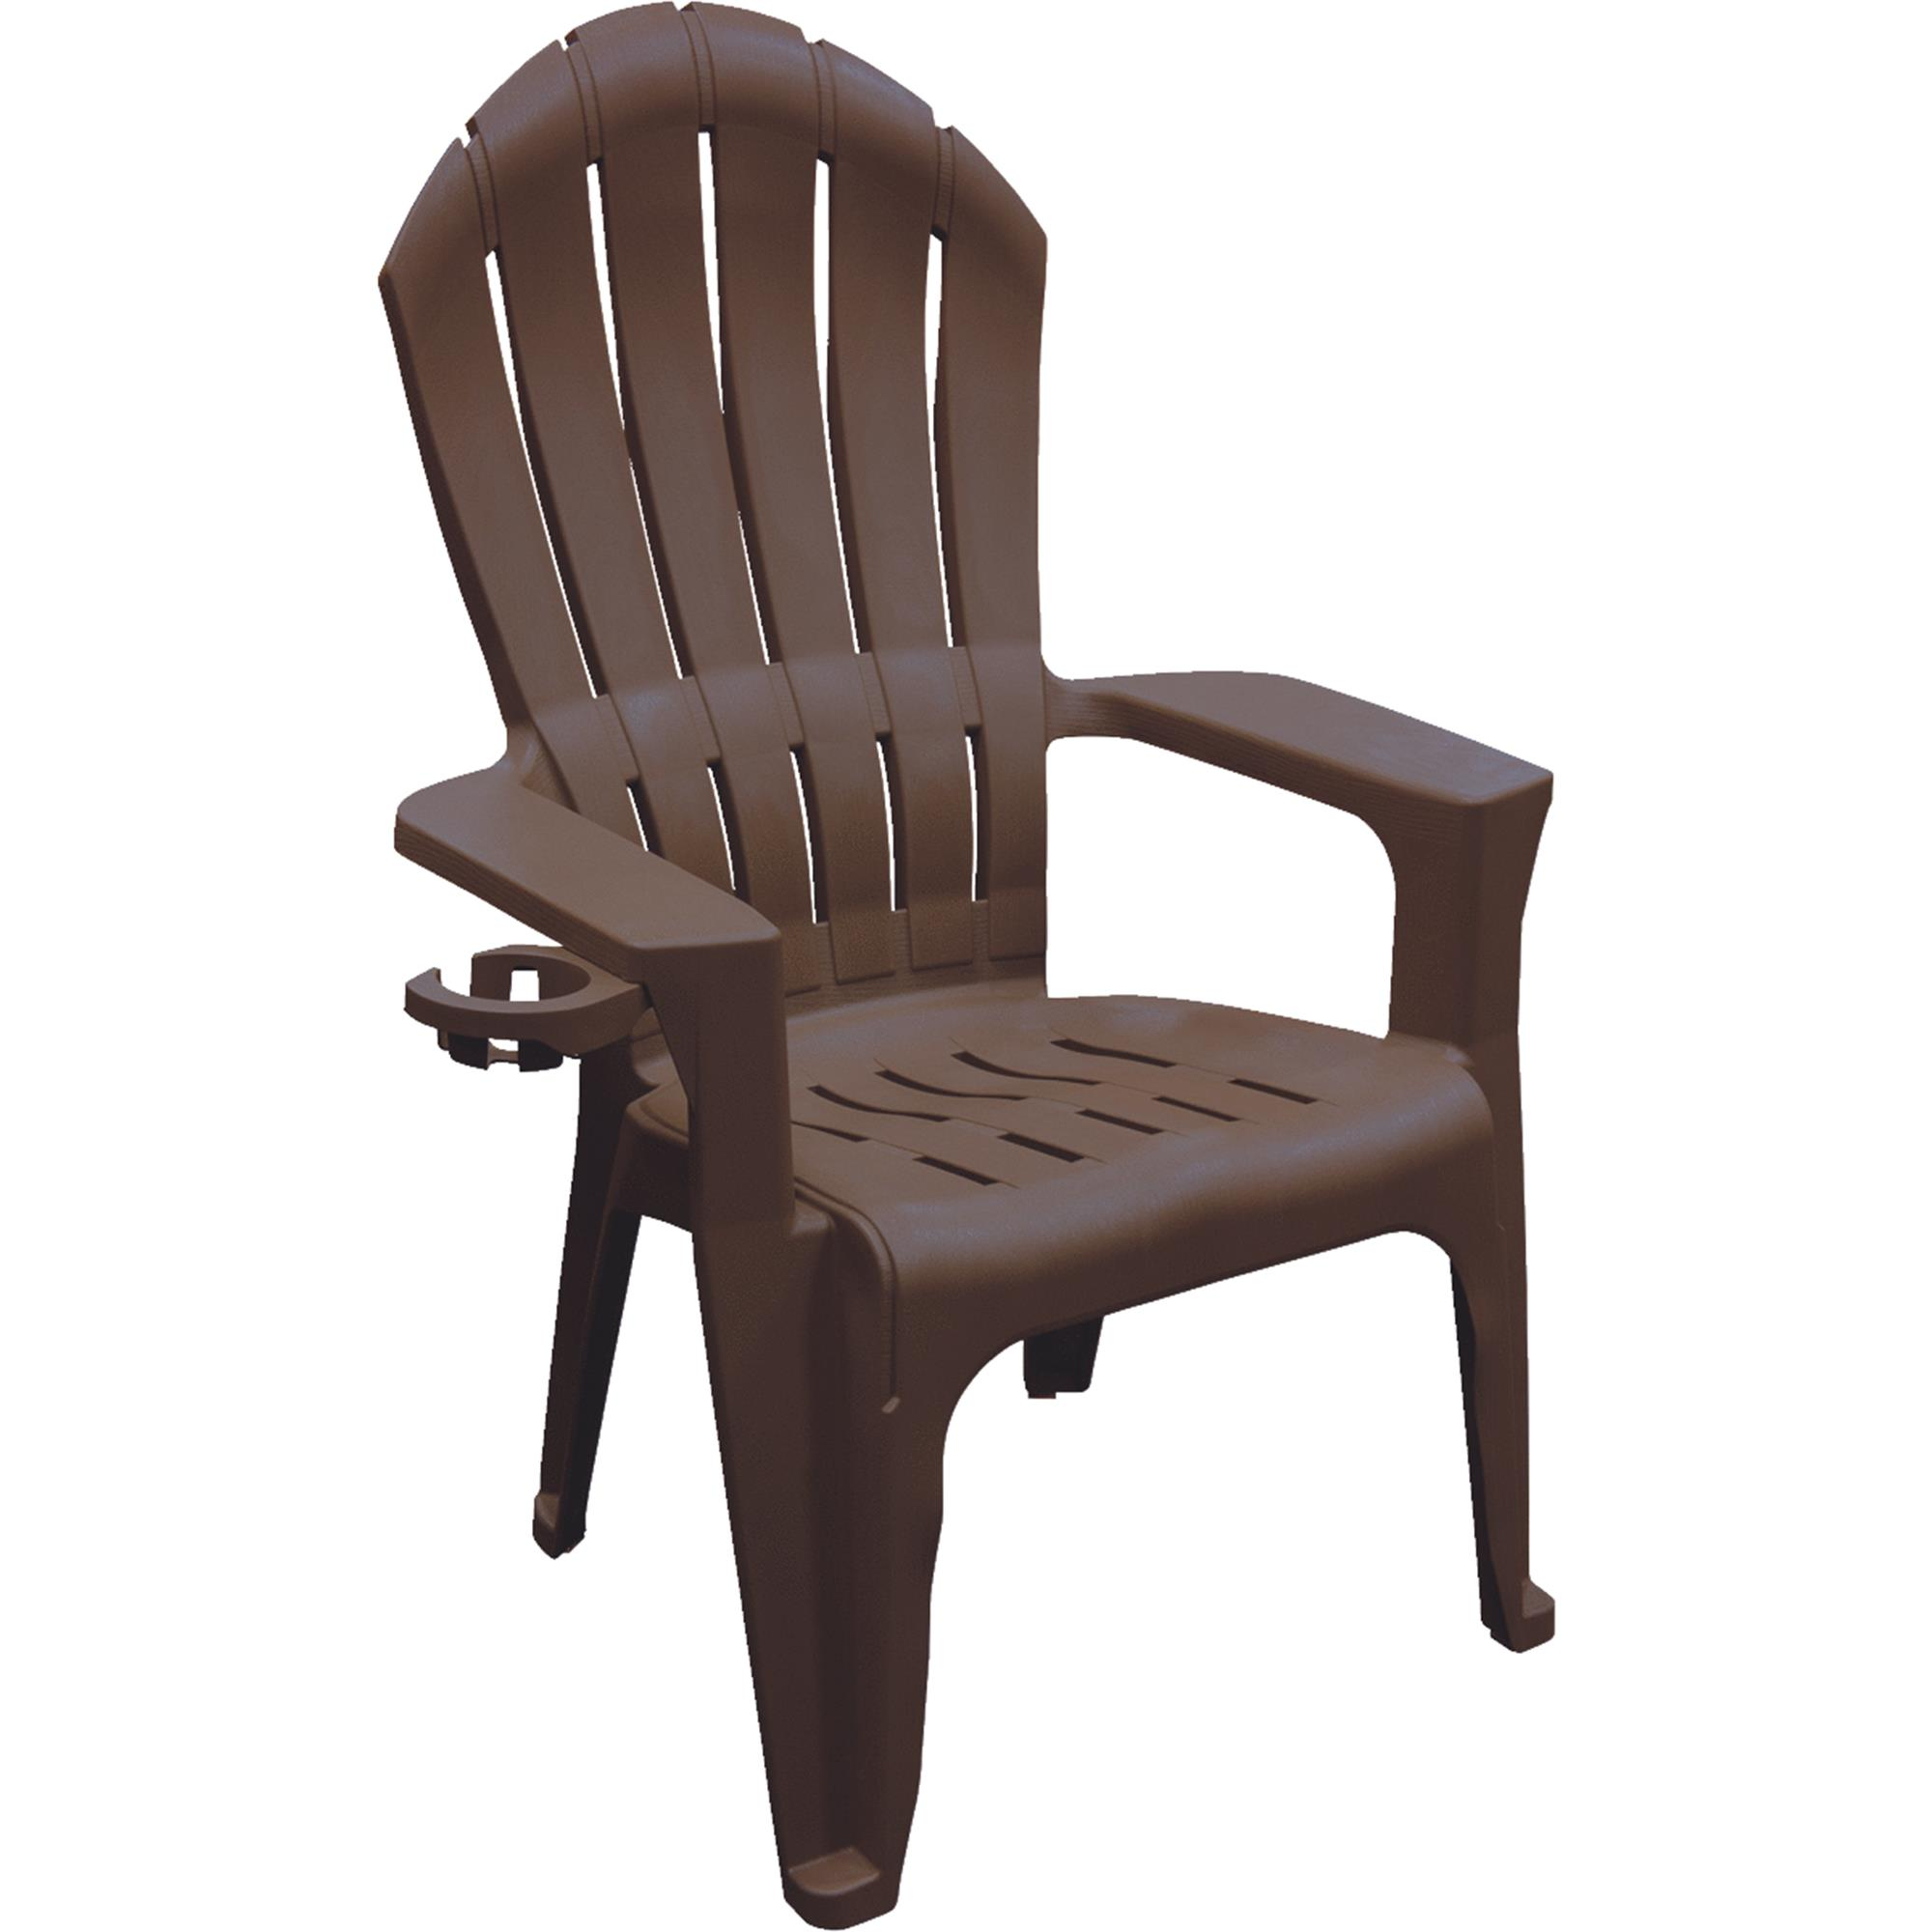 adams manufacturing adirondack chairs outdoor sling chair big easy walmart